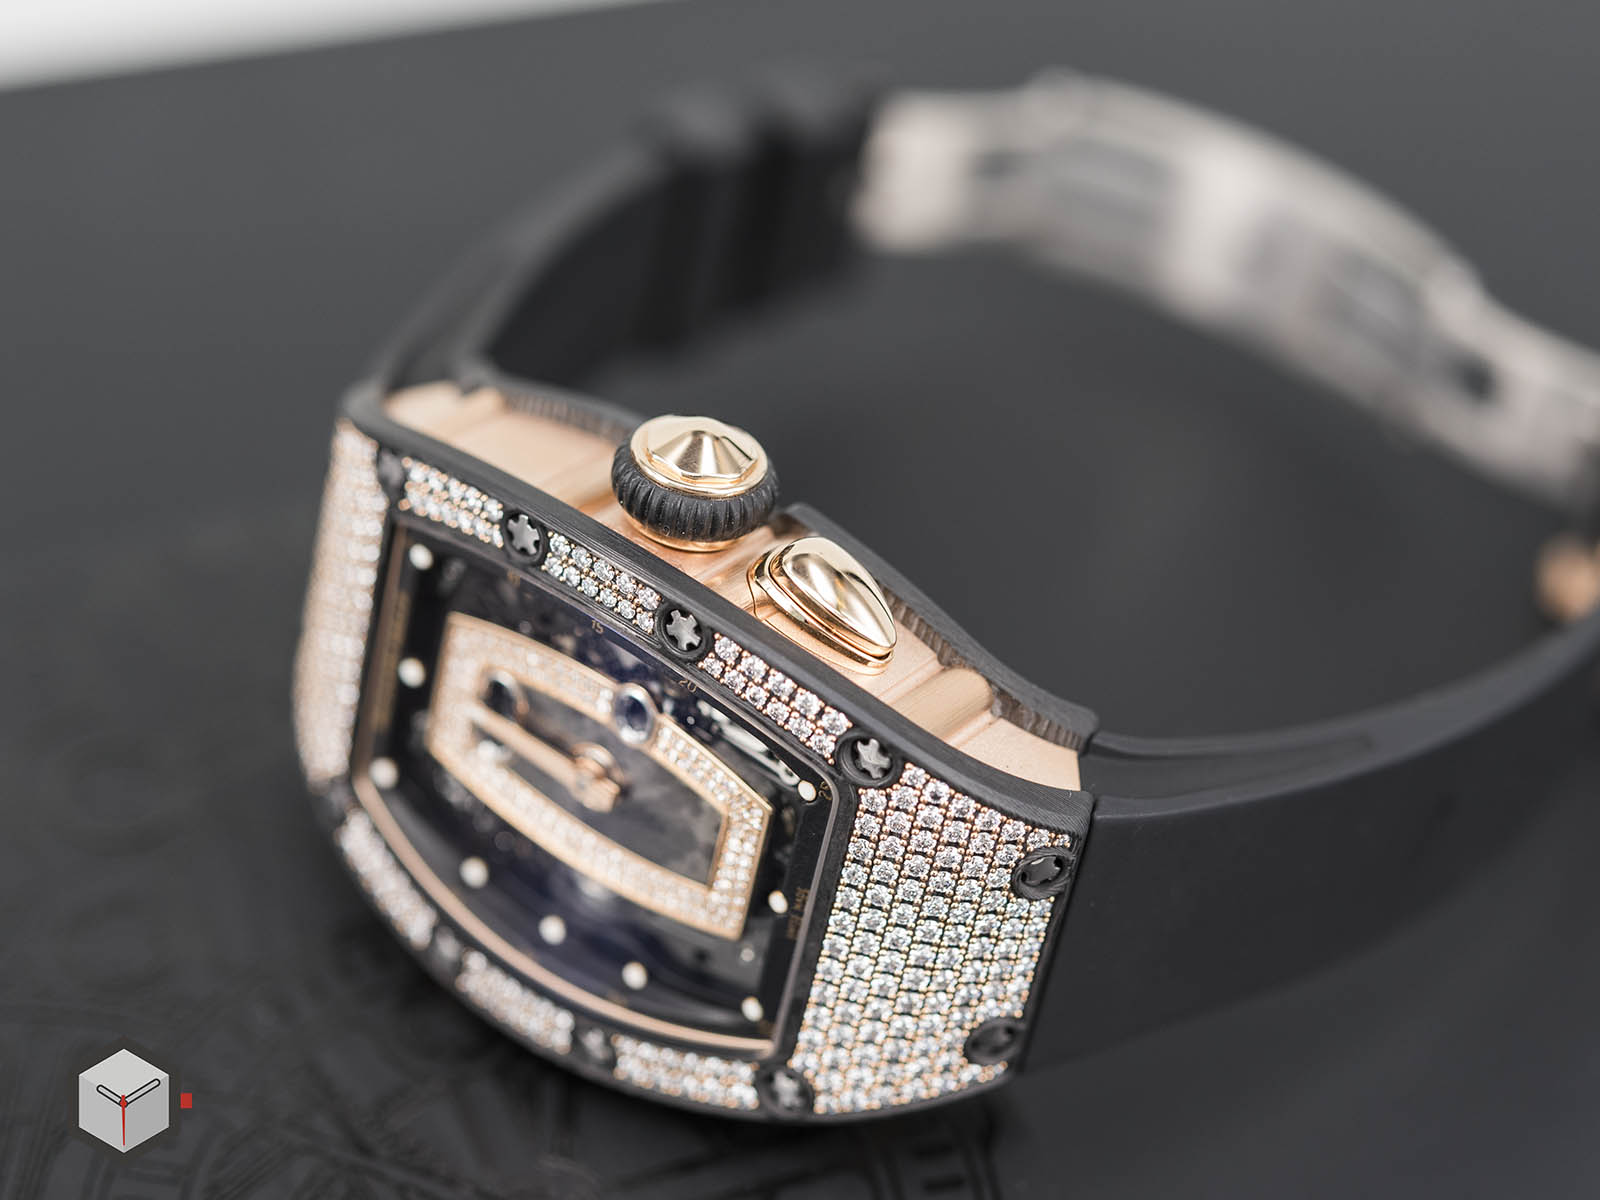 richard-mille-rm-037-automatic-8.jpg